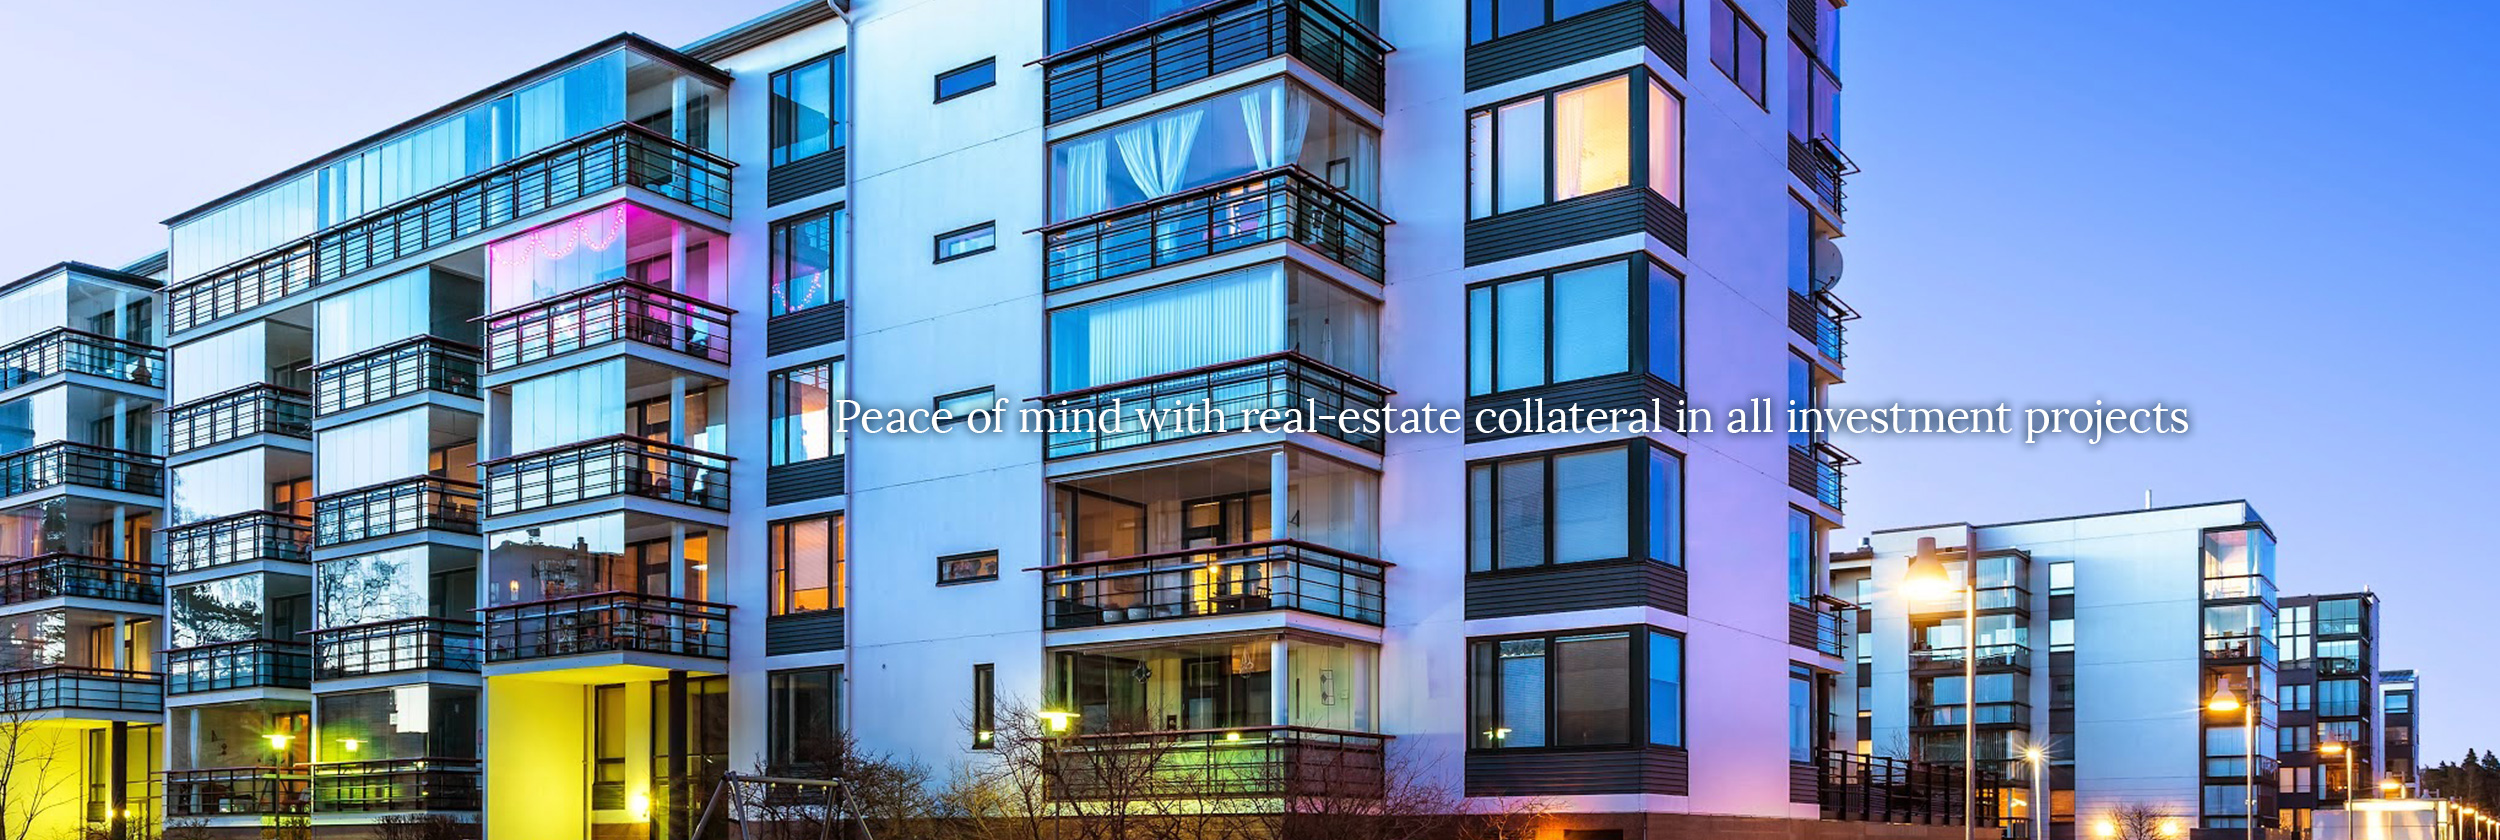 Peace of mind with real-estate collateral in all investment projects